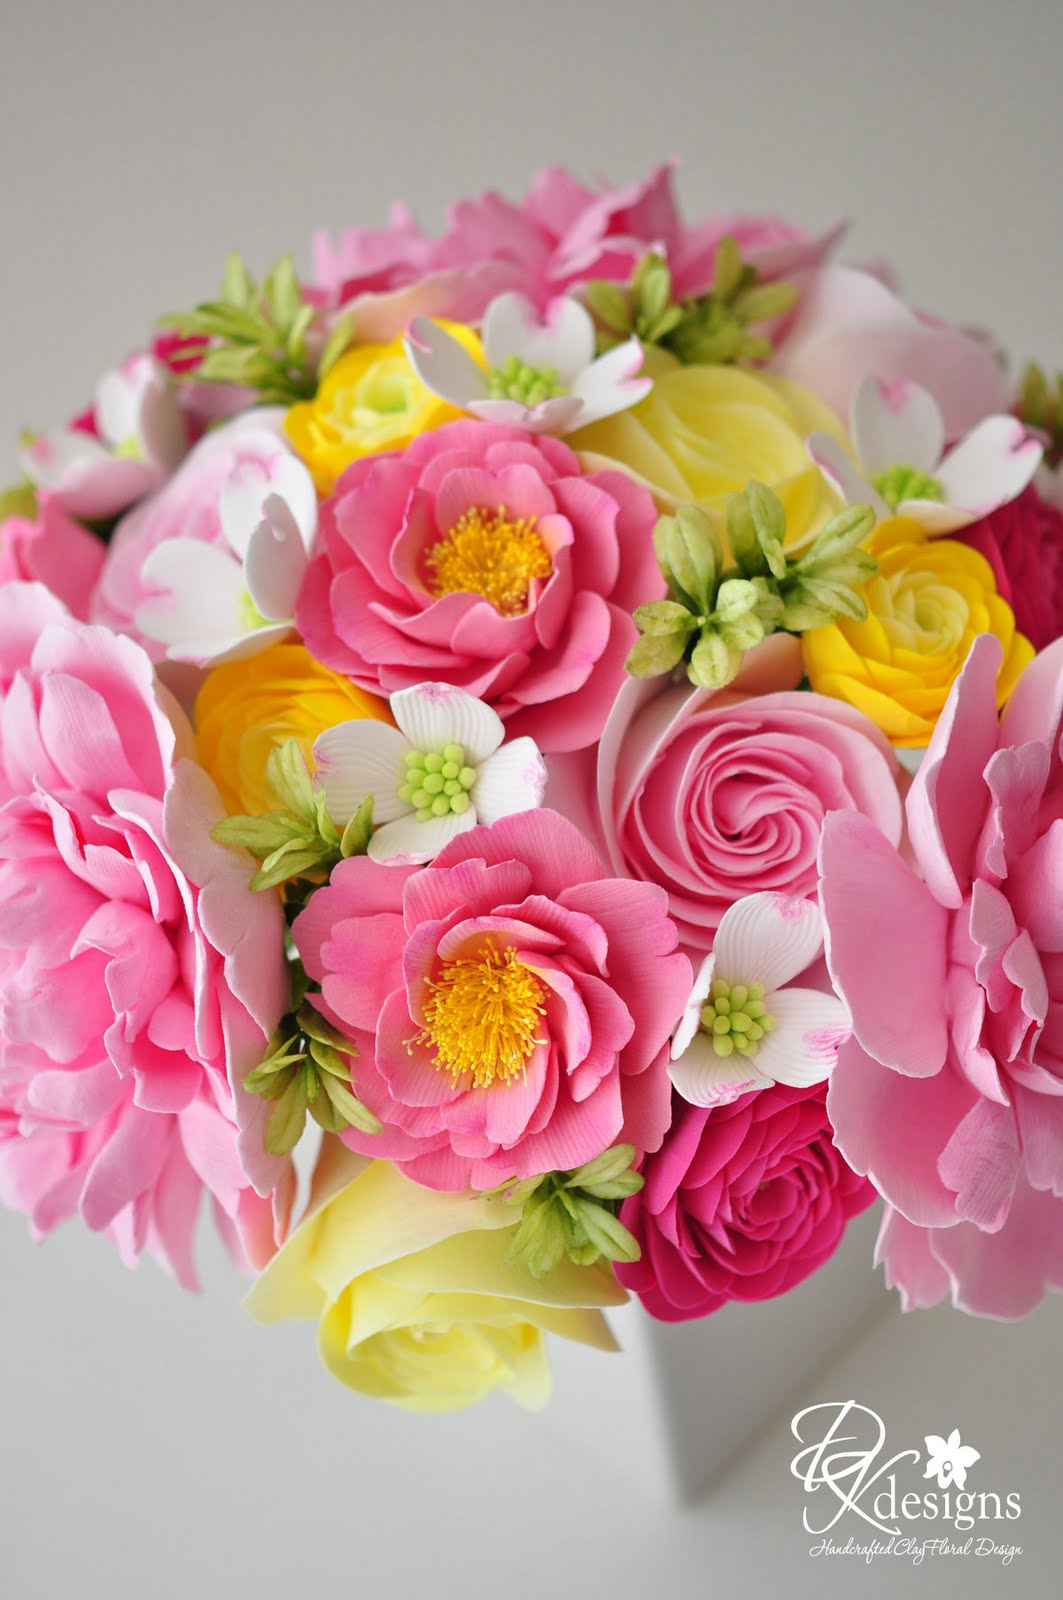 Pink and Yellow Wedding Bouquet for a Southern Wedding - DK Designs